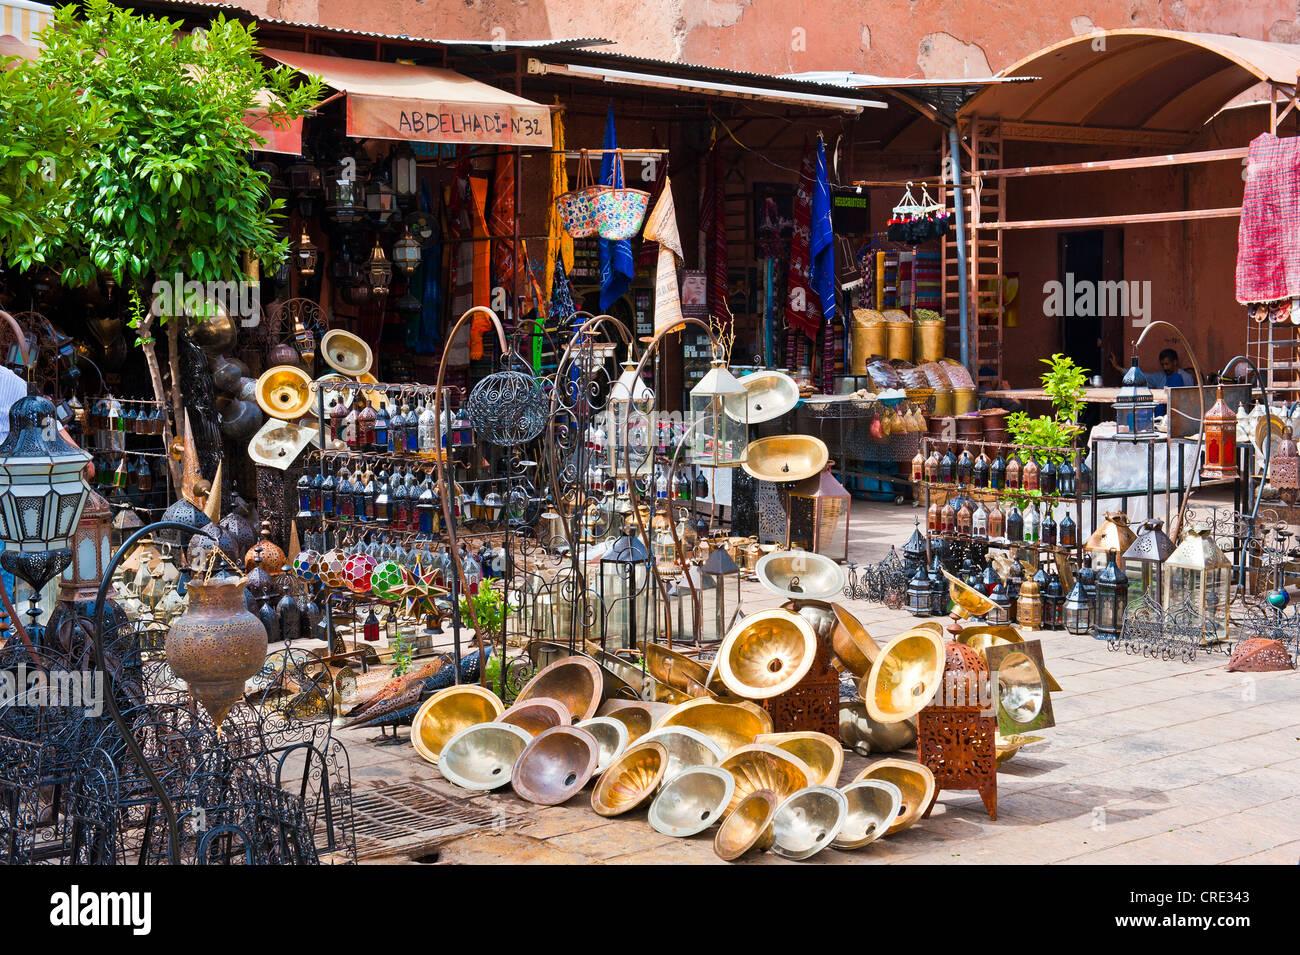 Traders and craftsmen have displayed lanterns, lamps, sinks made of brass, copper and other metal outside their - Stock Image